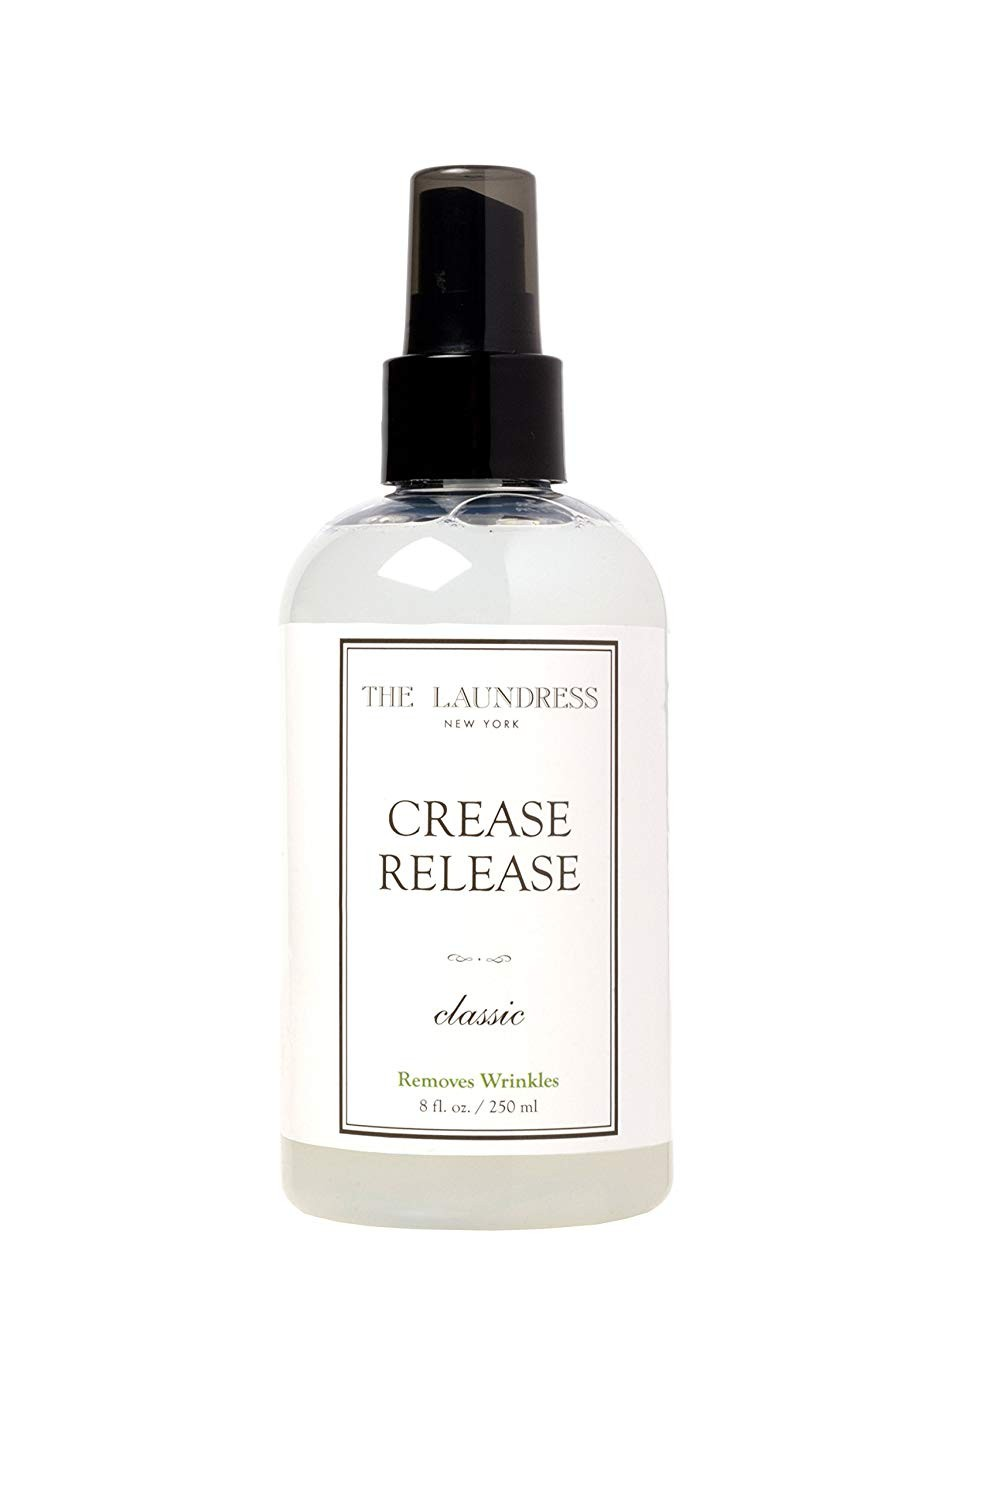 THE LAUNDRESS CREASE RELEASE CLASSIC 250 ML